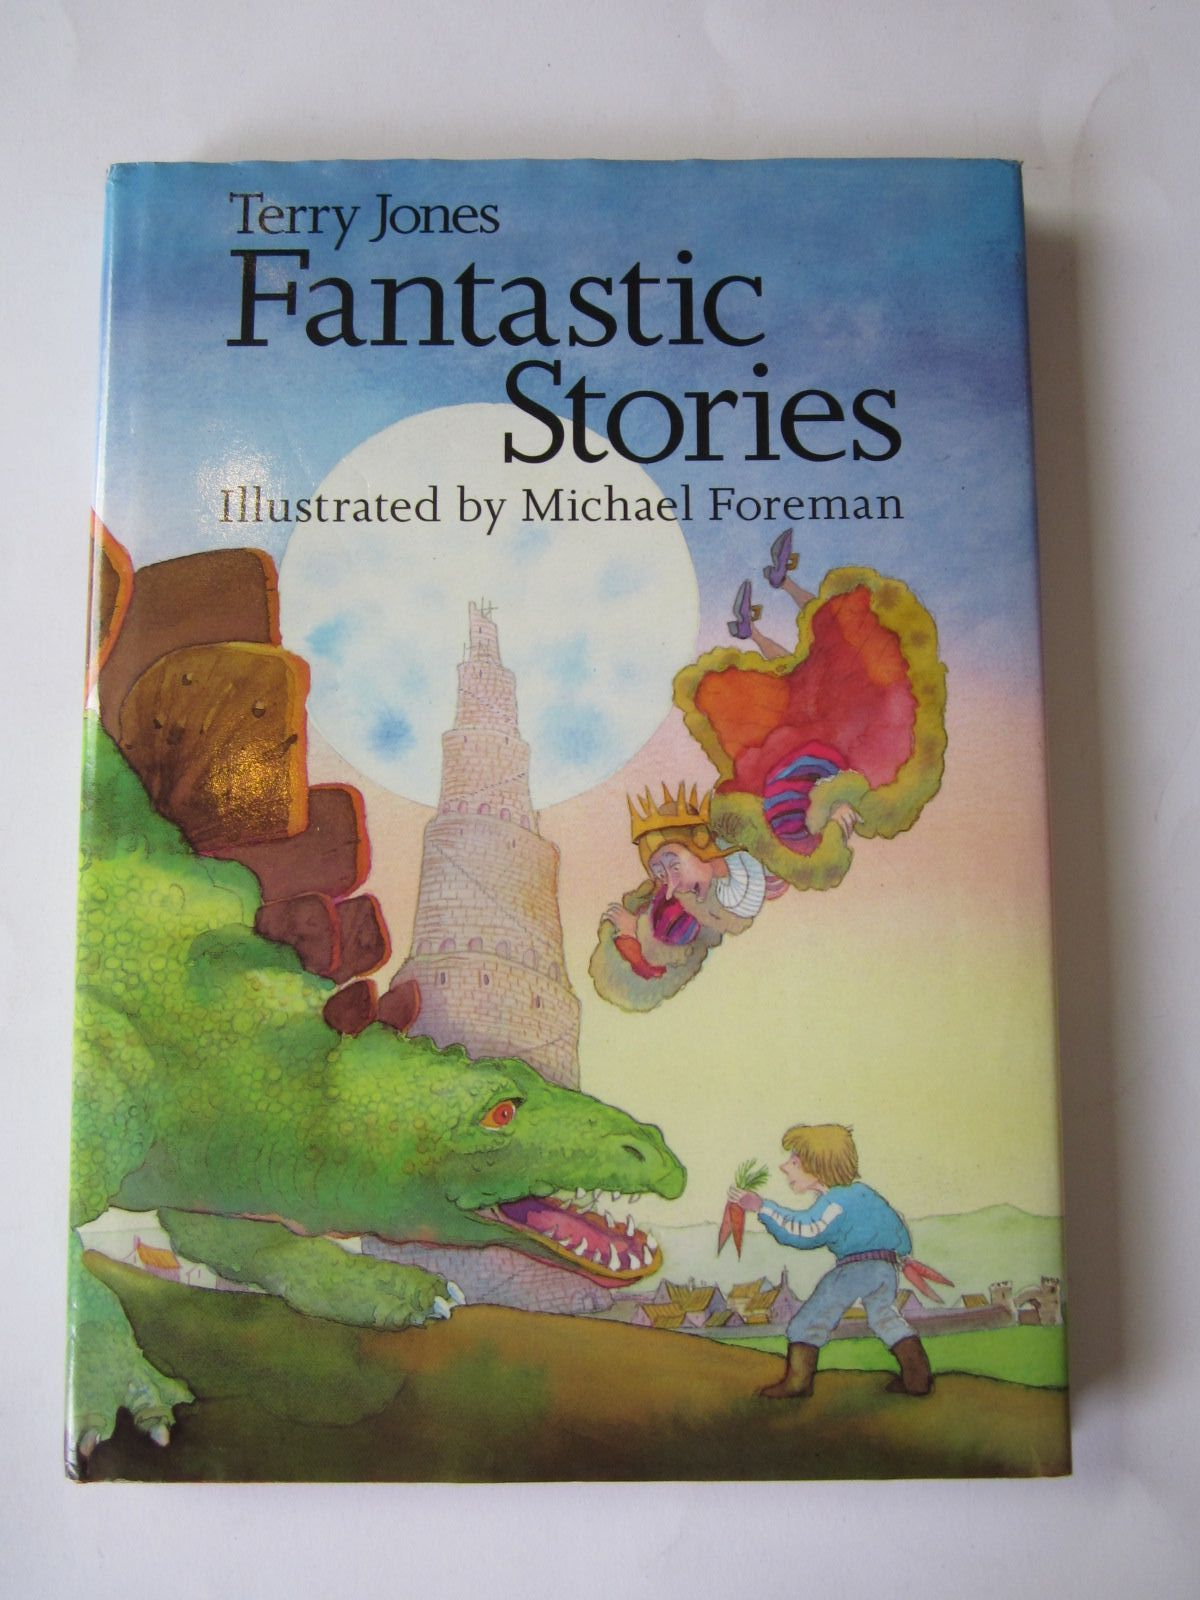 Photo of FANTASTIC STORIES written by Jones, Terry illustrated by Foreman, Michael published by Pavilion Books Ltd. (STOCK CODE: 1501147)  for sale by Stella & Rose's Books